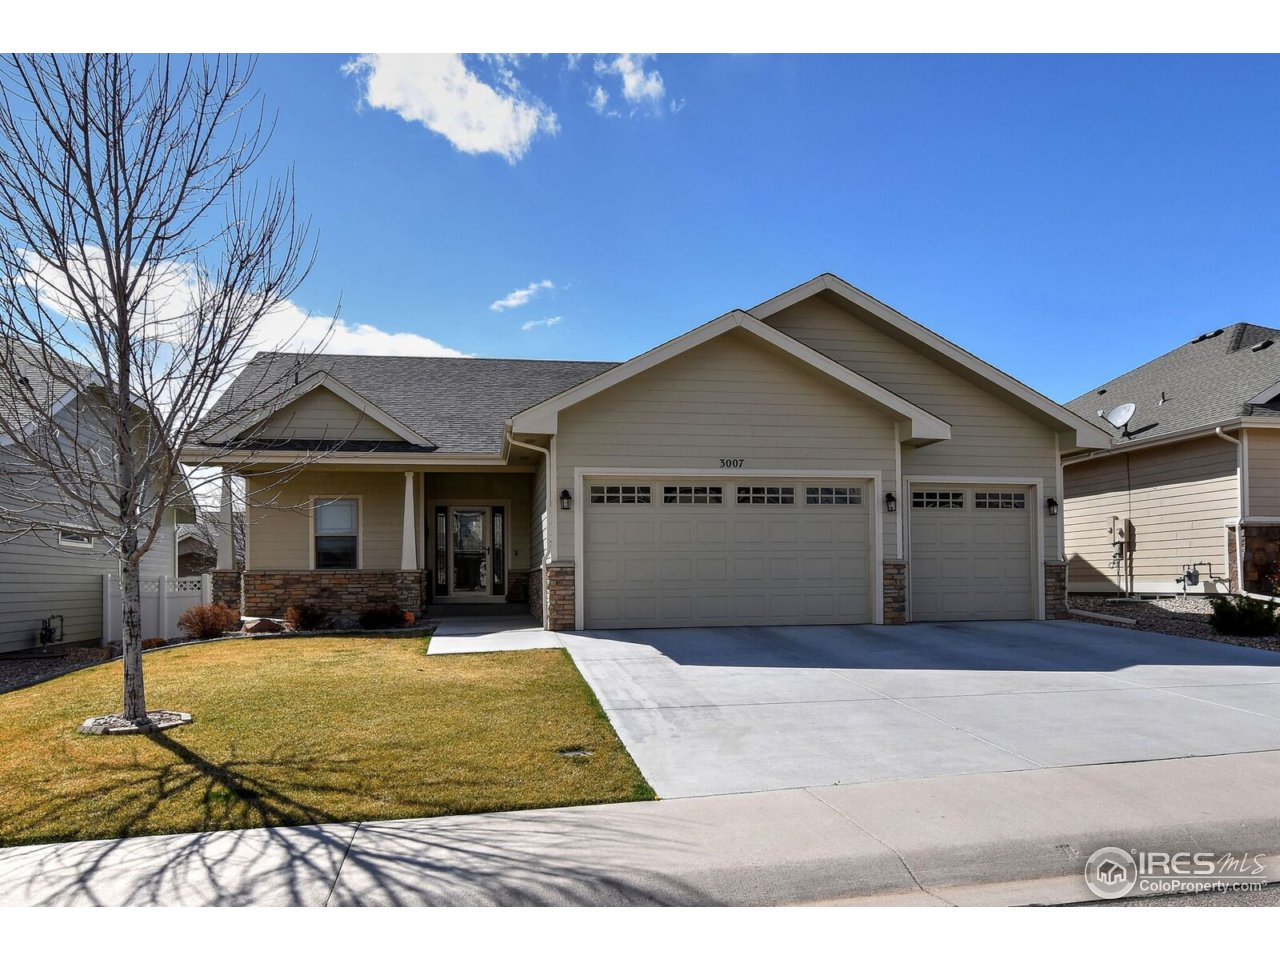 3007 68 Ave, Greeley CO 80634